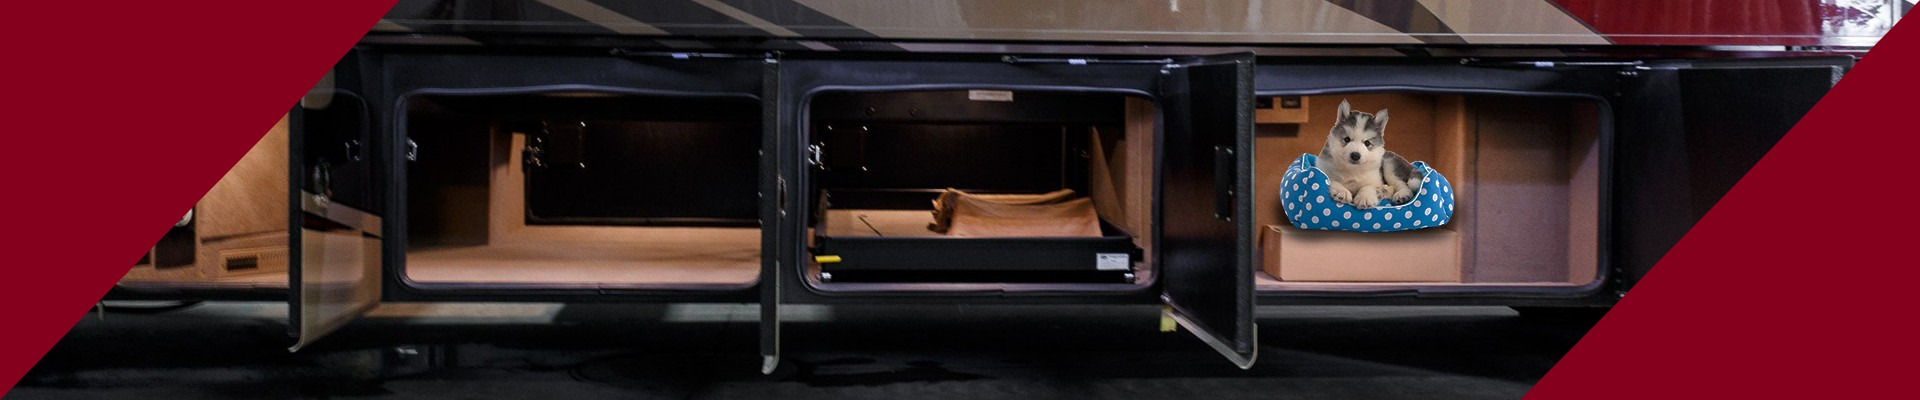 Turn addition basement space into a pet kennel in your RV.